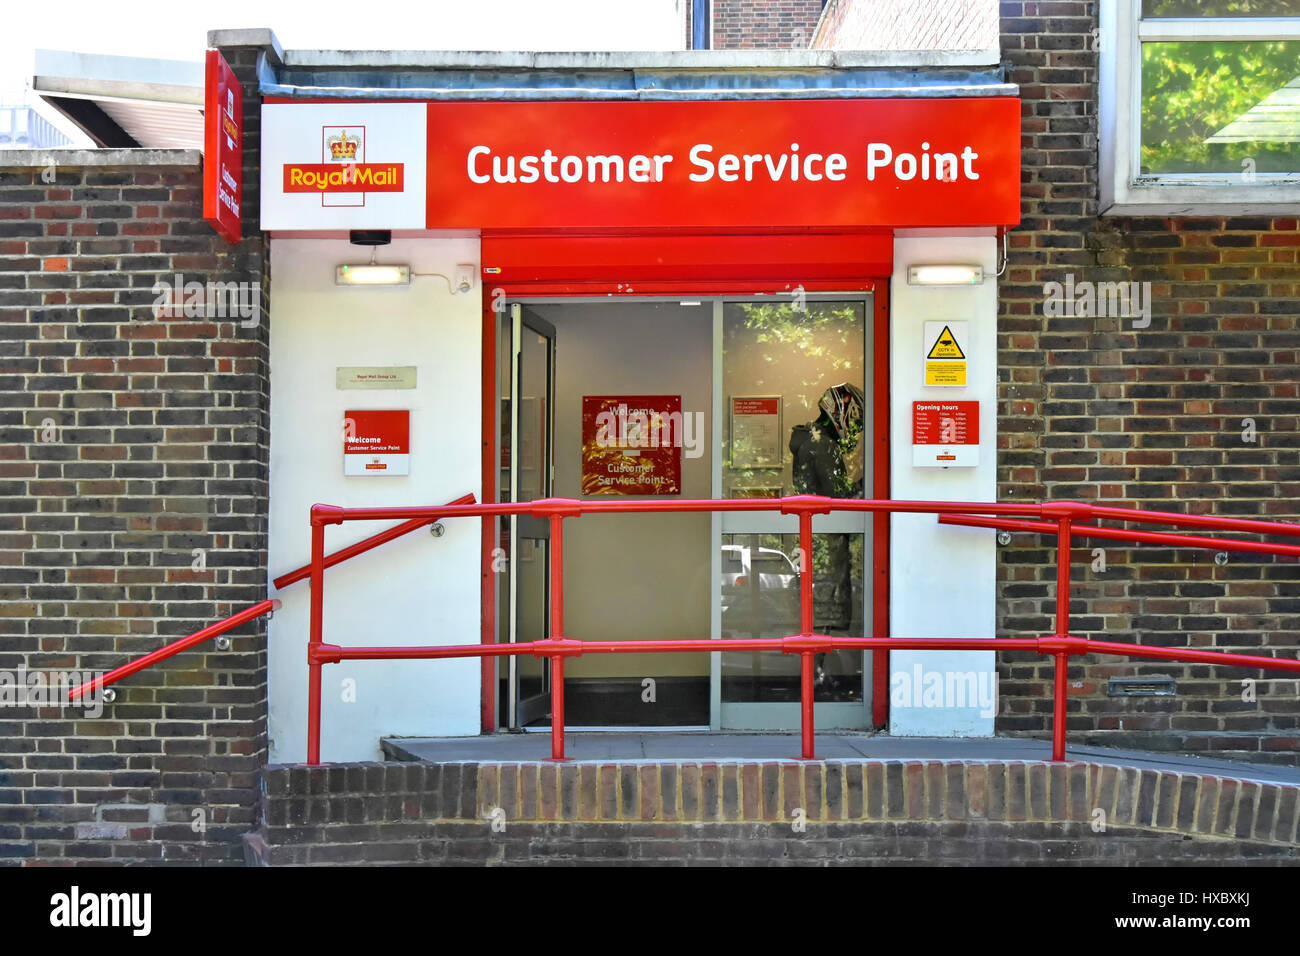 Royal Mail Customer Service Point with exterior wheelchair ramp disabled disability access Harlow Essex UK - Stock Image